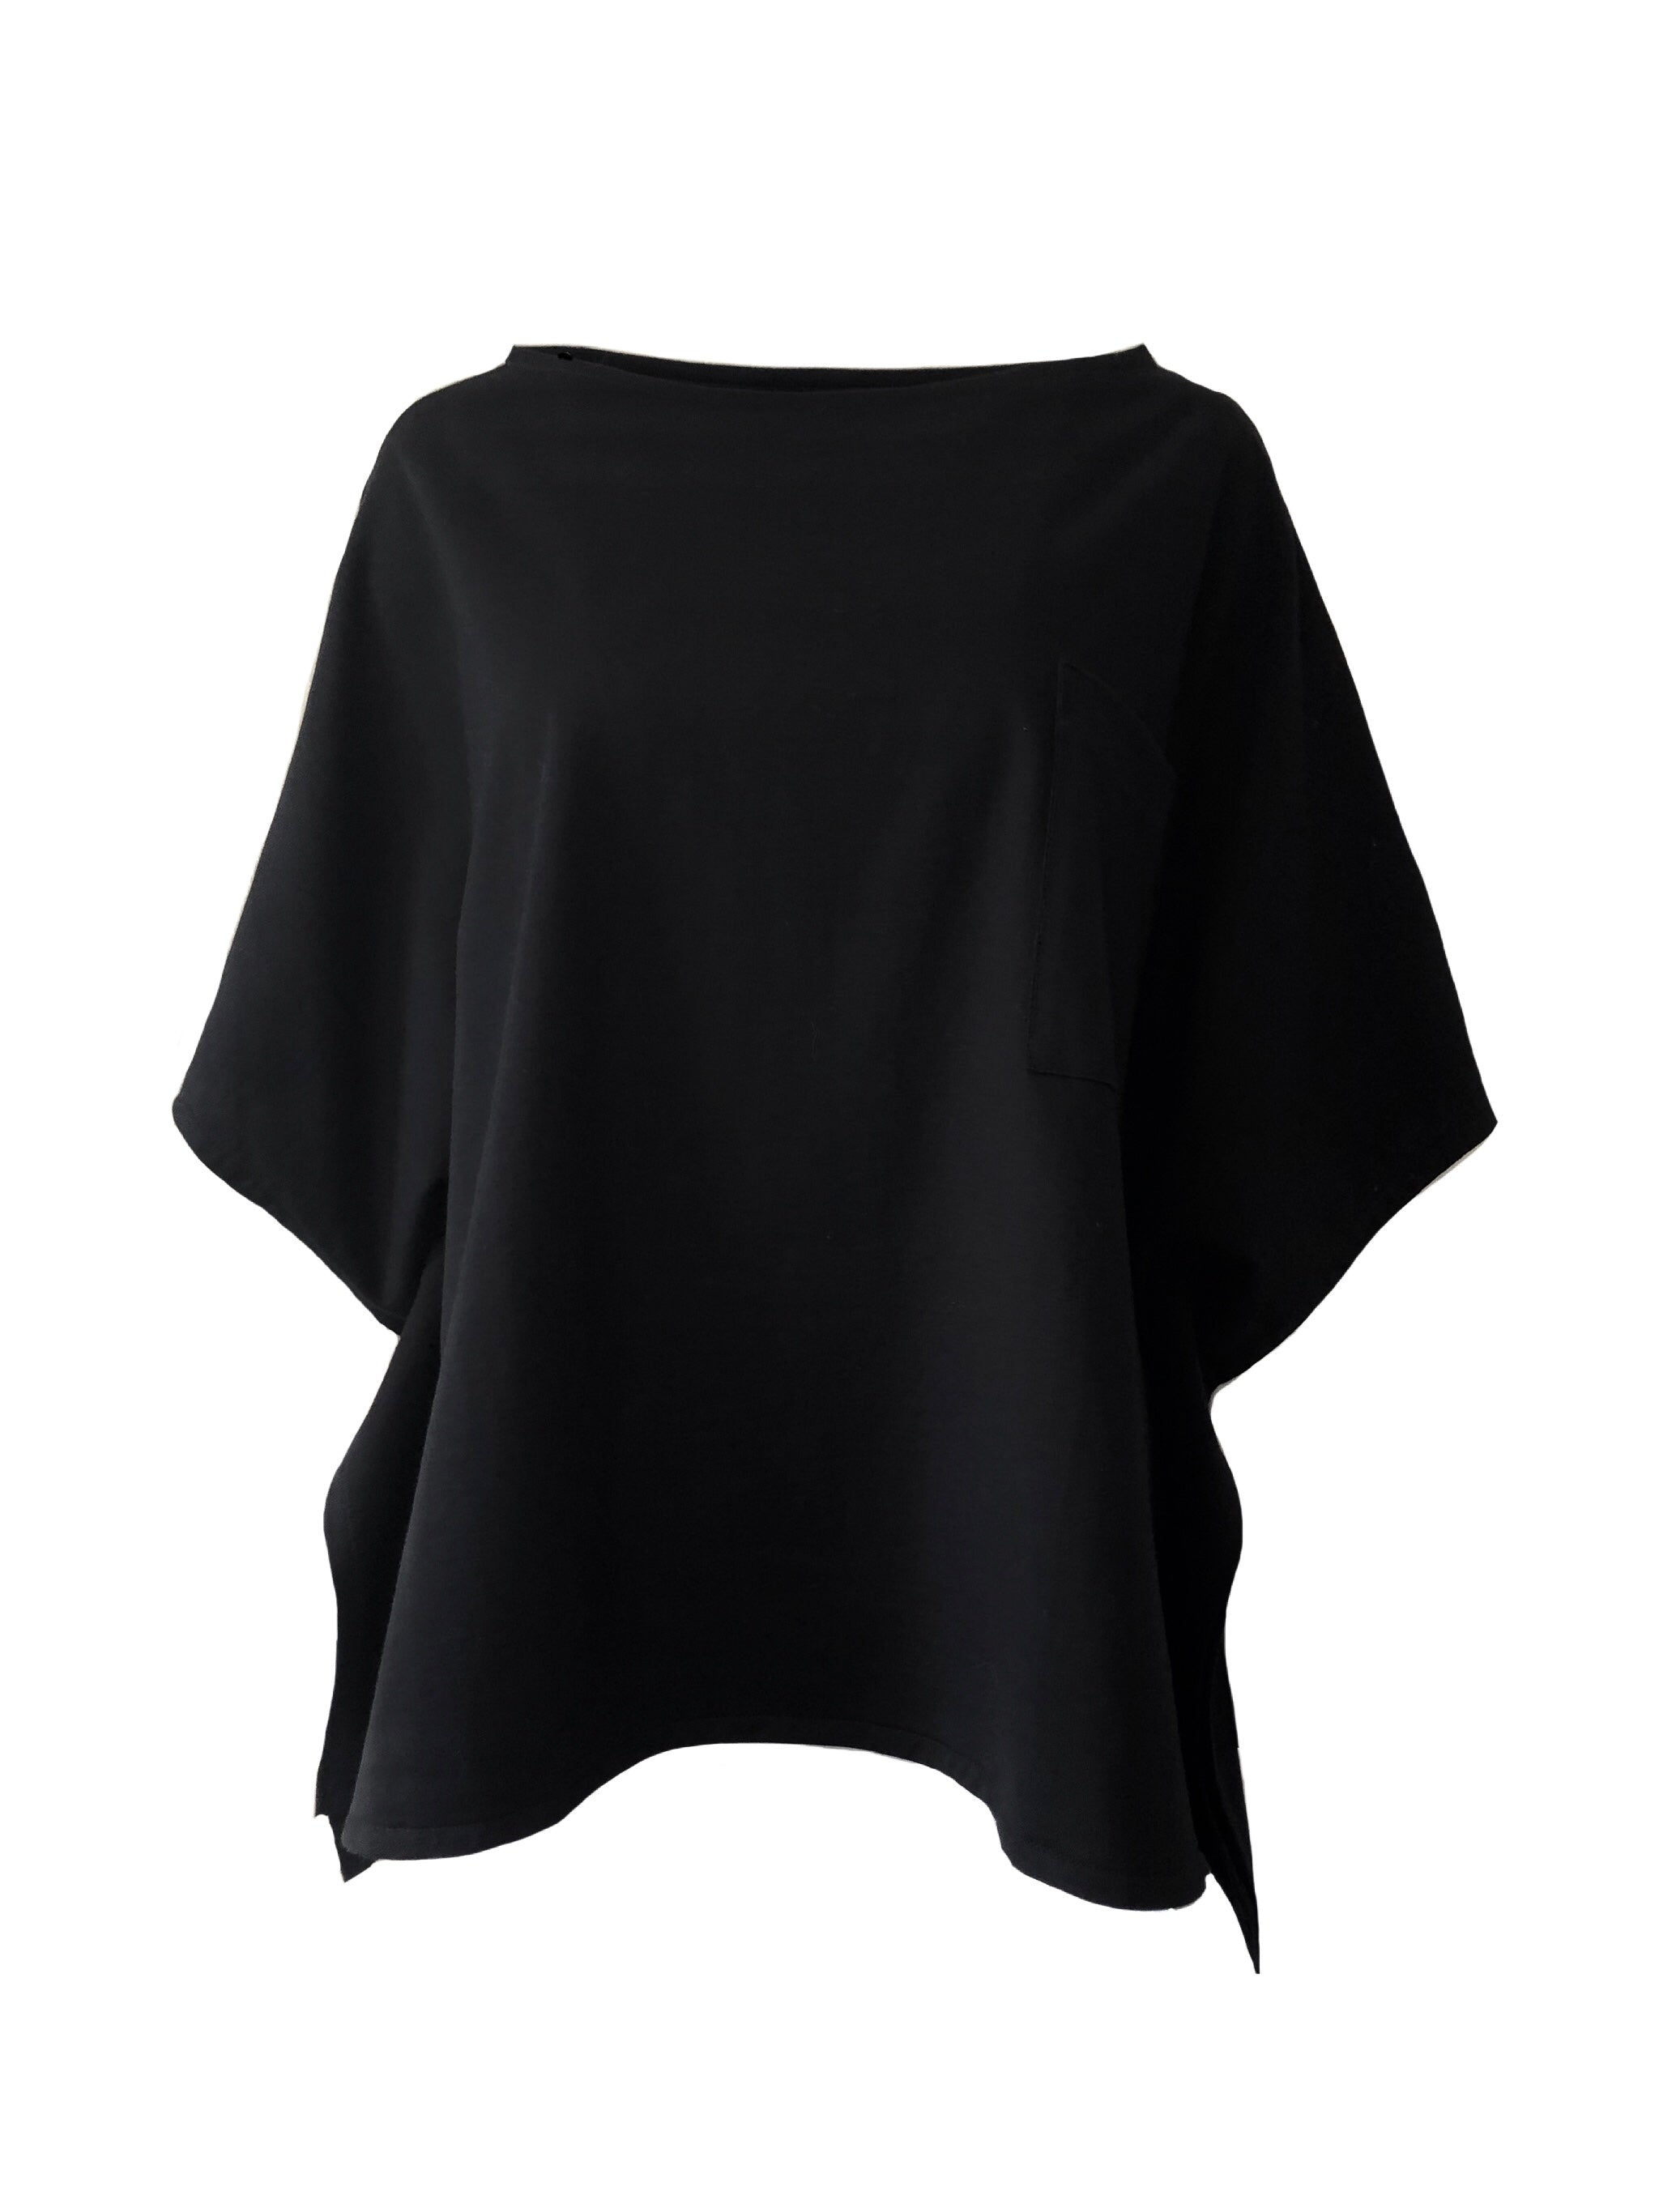 STINGRAY TOP / HIGH DENSITY COTTON - C2